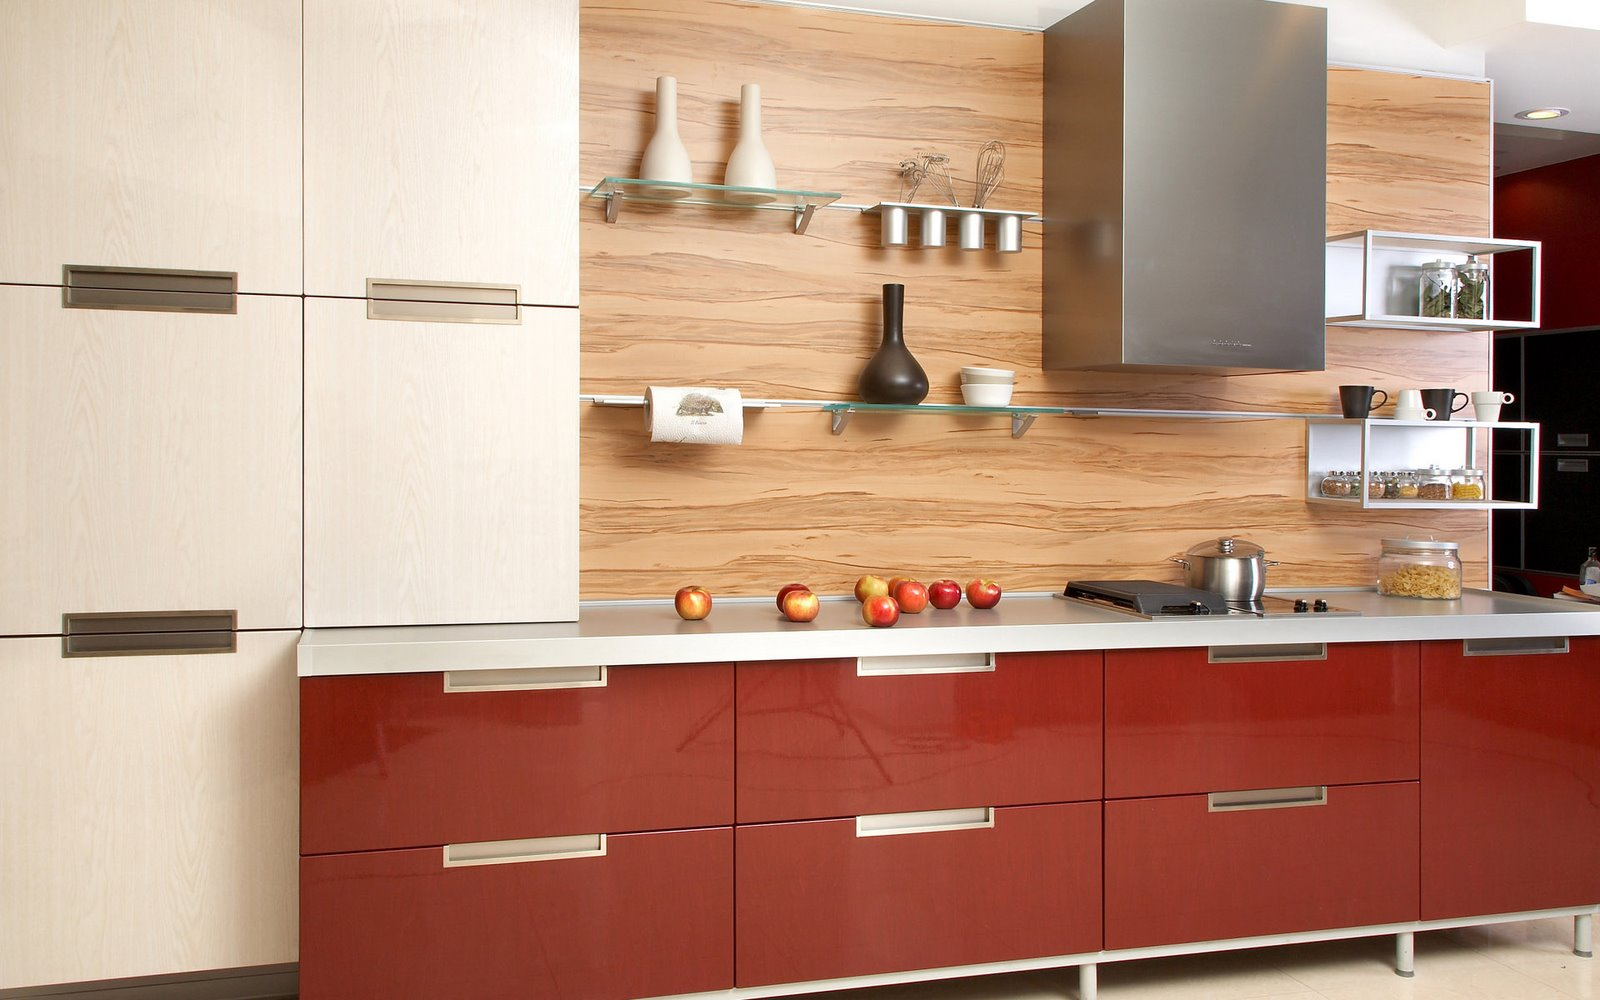 Modern wood kitchen design dream kitchens pinterest for Modern kitchen furniture